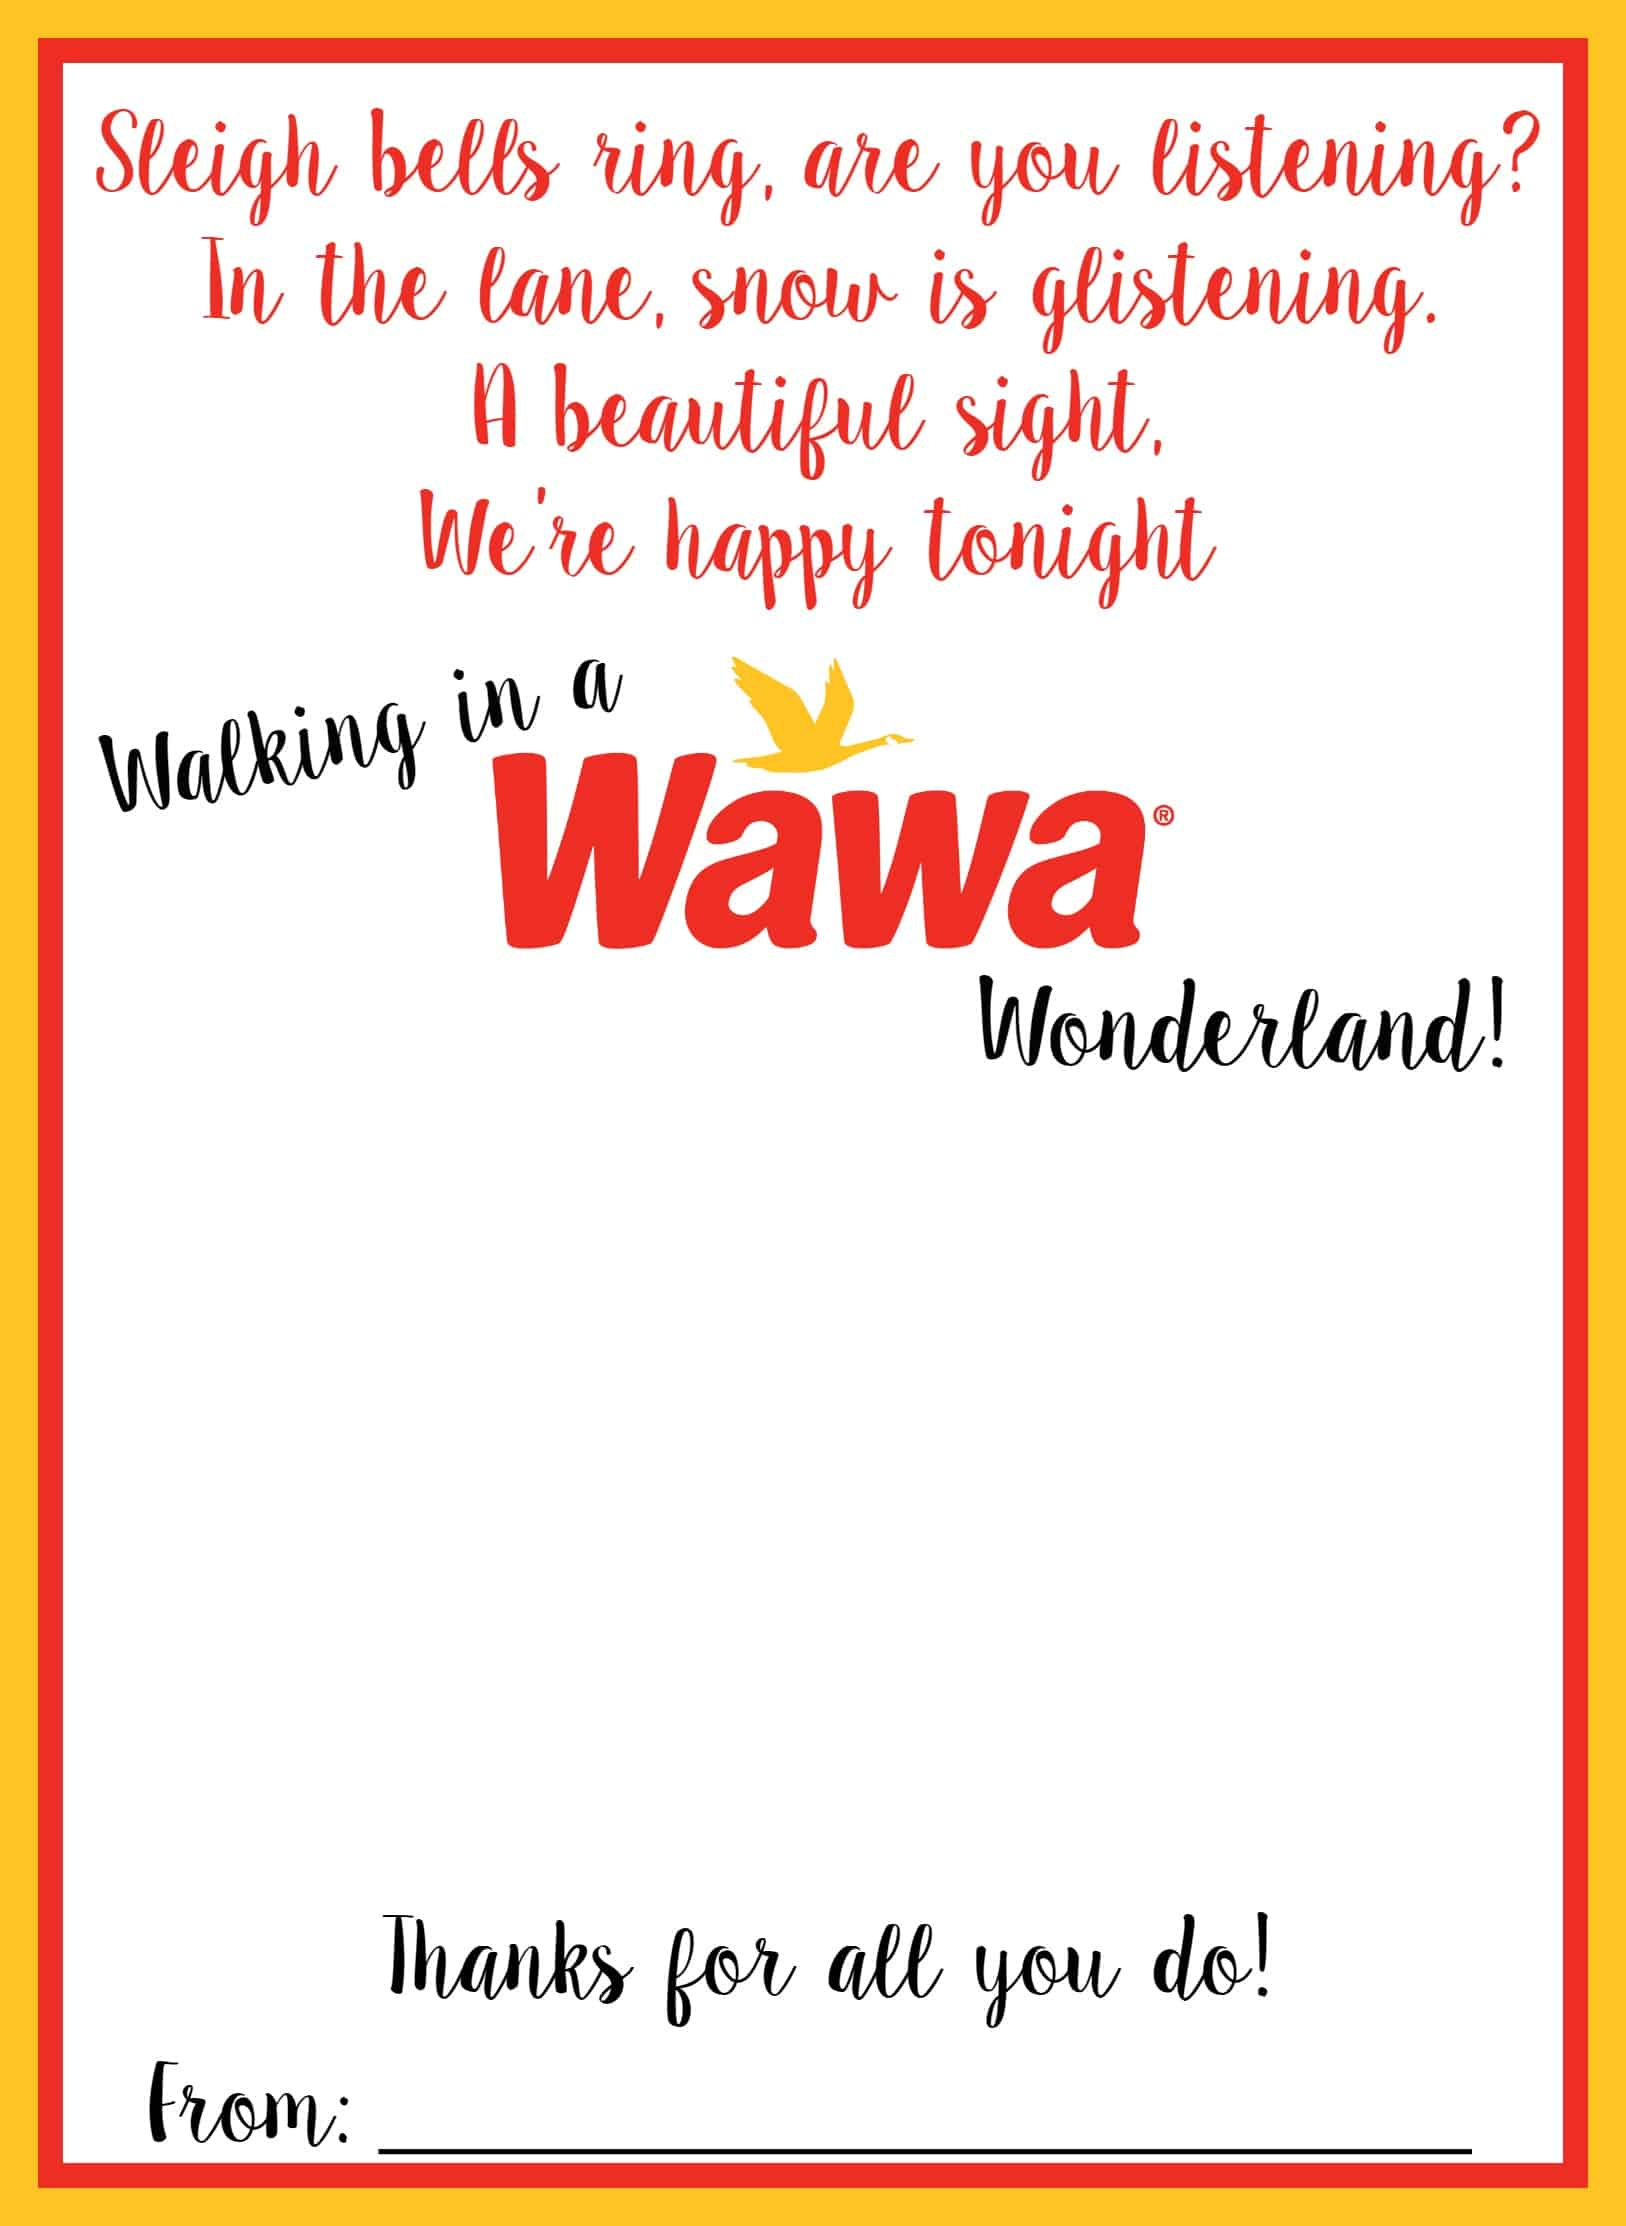 picture about Wawa Coupons Printable called Wawa discount coupons printable - Minastrin 24 fe coupon card